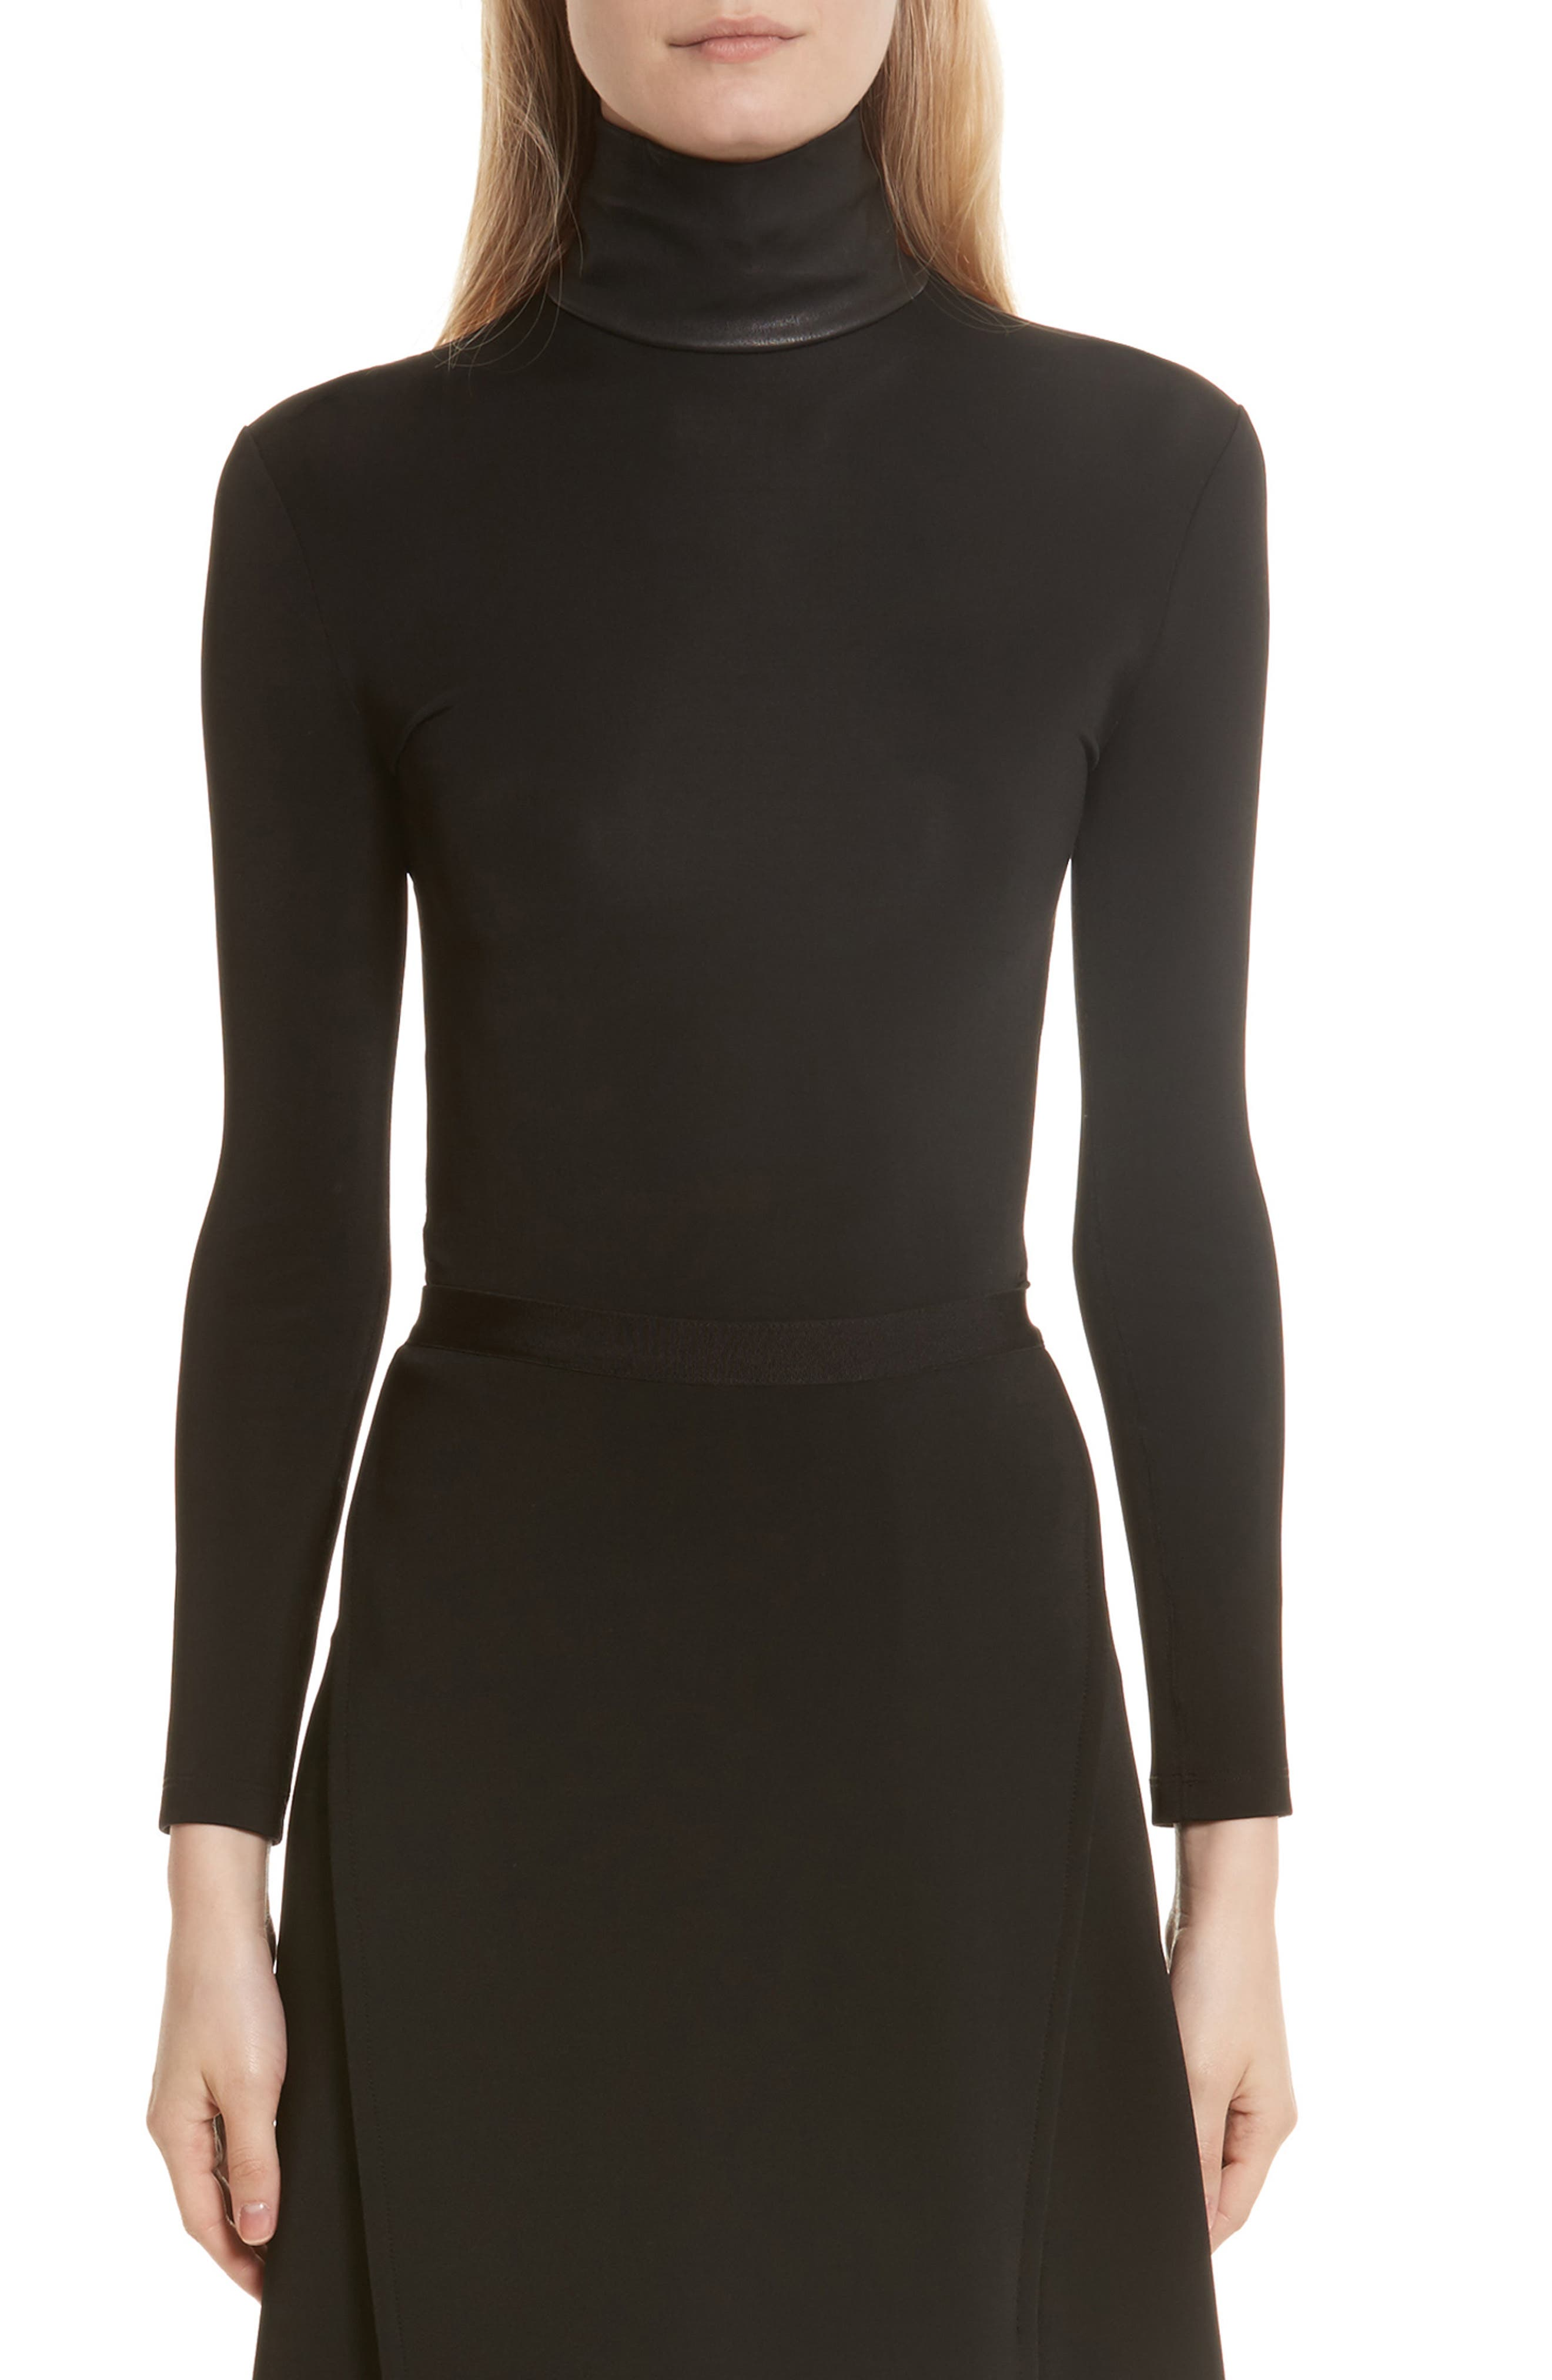 Alternate Image 1 Selected - Helmut Lang Bondage Jersey Leather Neck Top